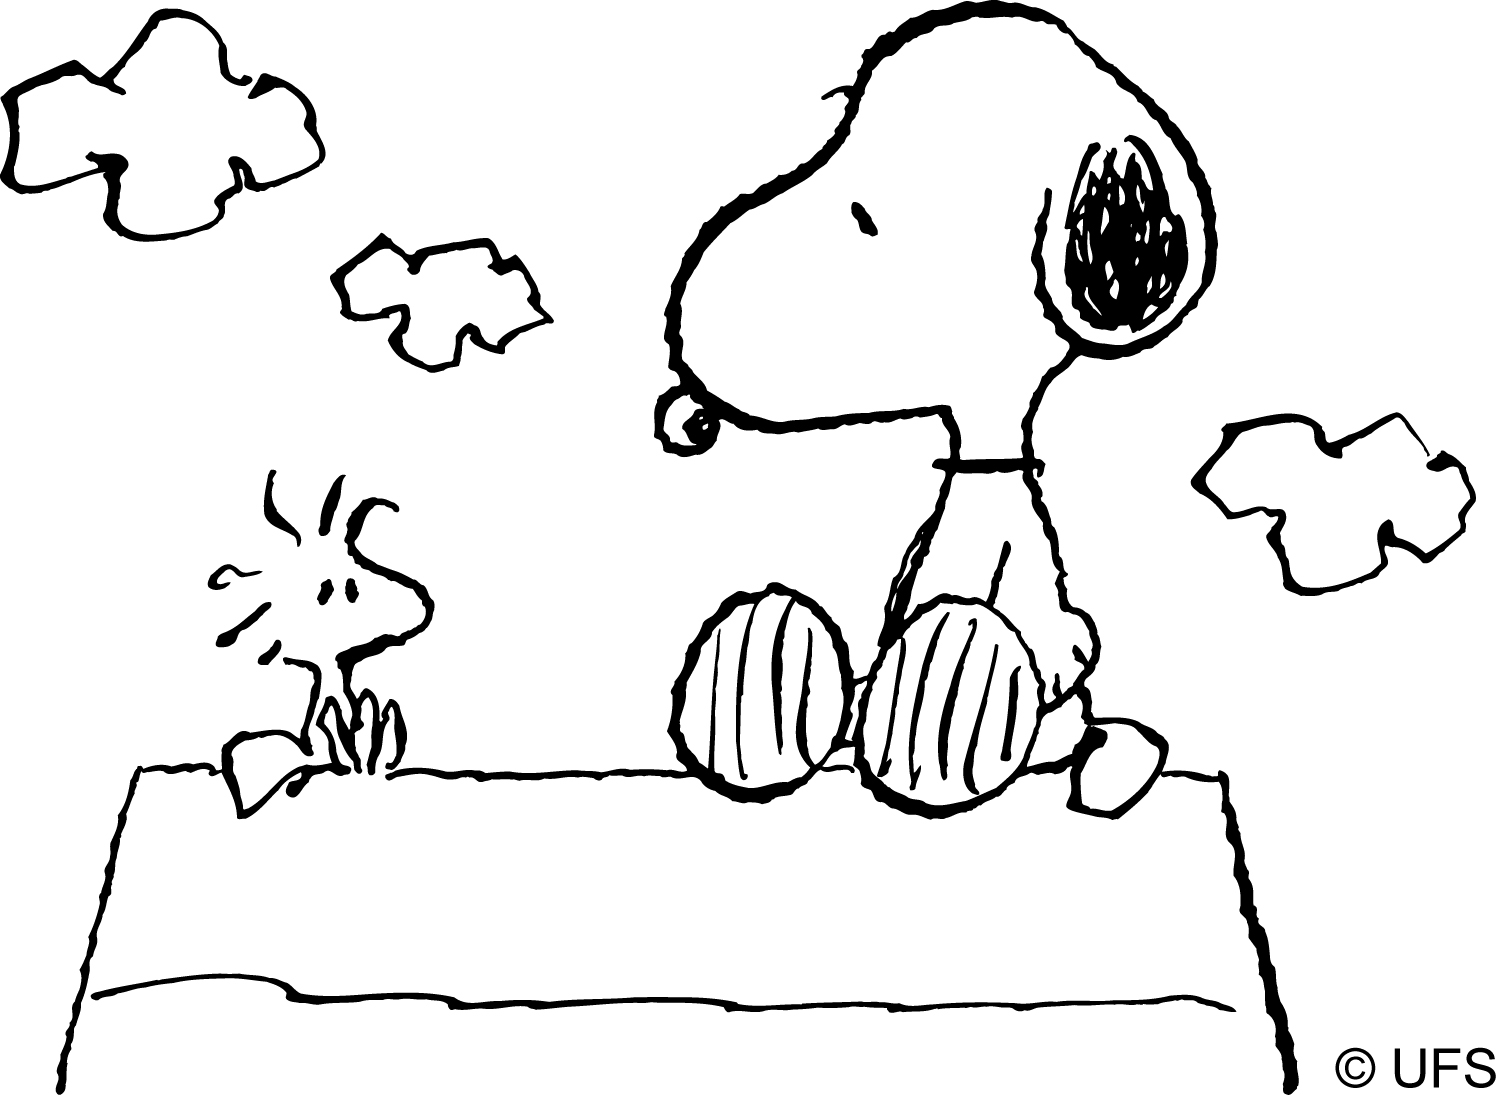 woodstock snoopy coloring pages | Woodstock Drawing at GetDrawings.com | Free for personal ...